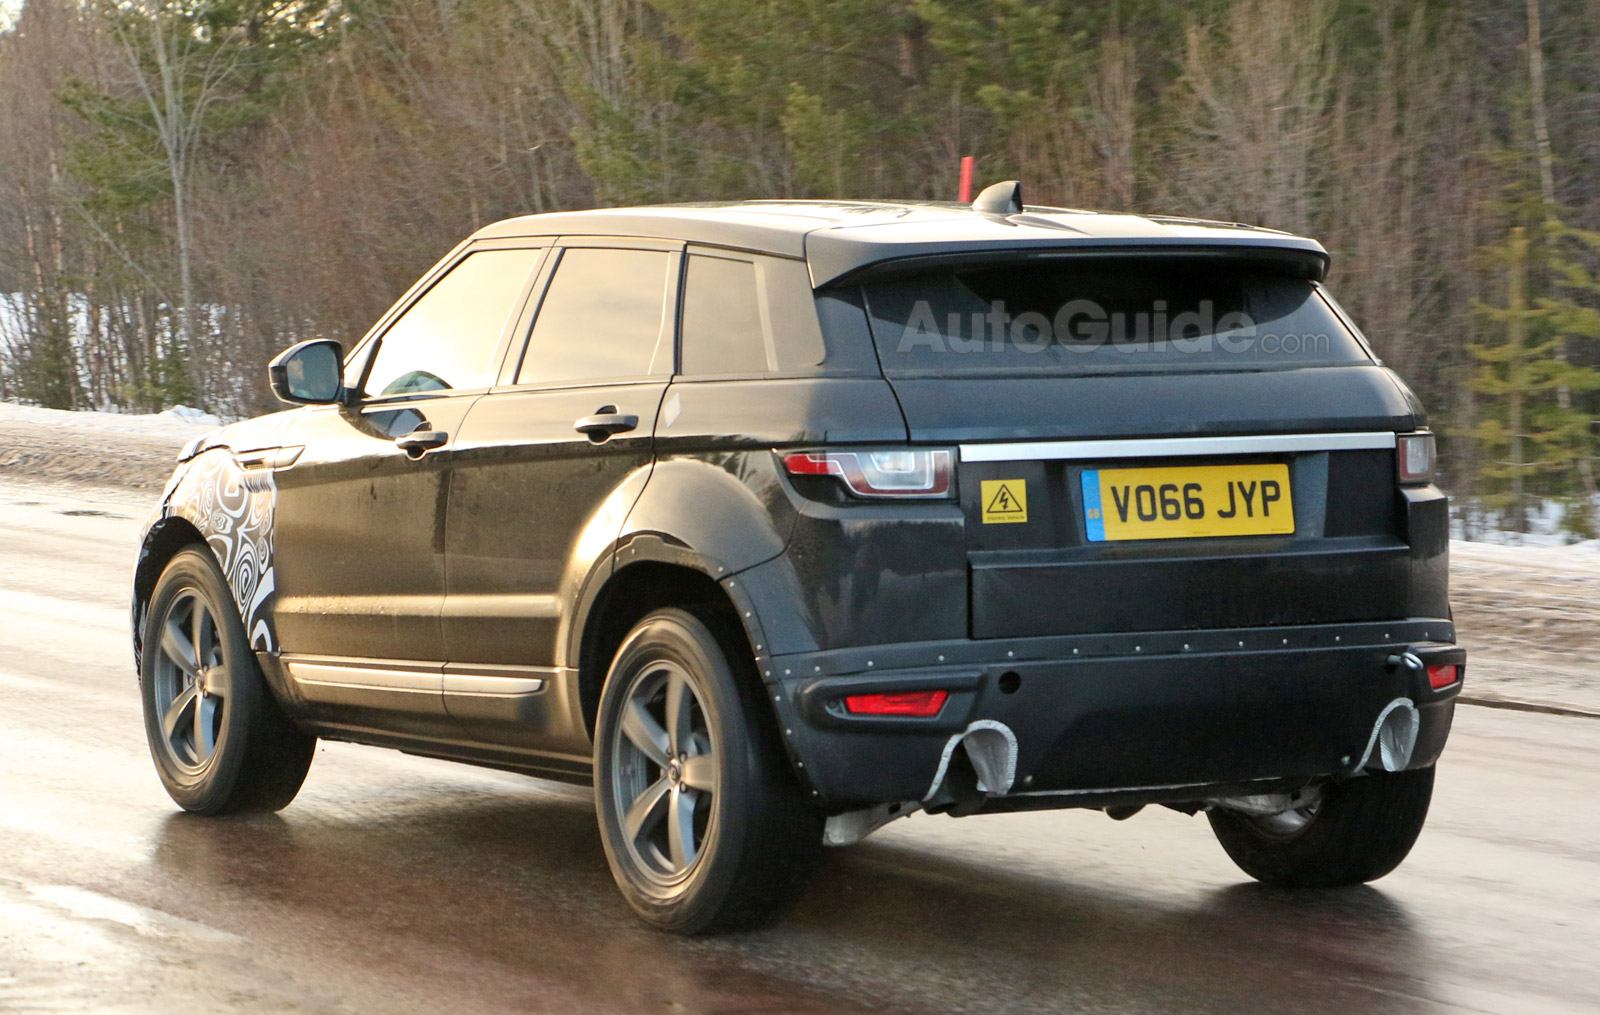 Second Generation Range Rover Evoque Mule Spy Photos